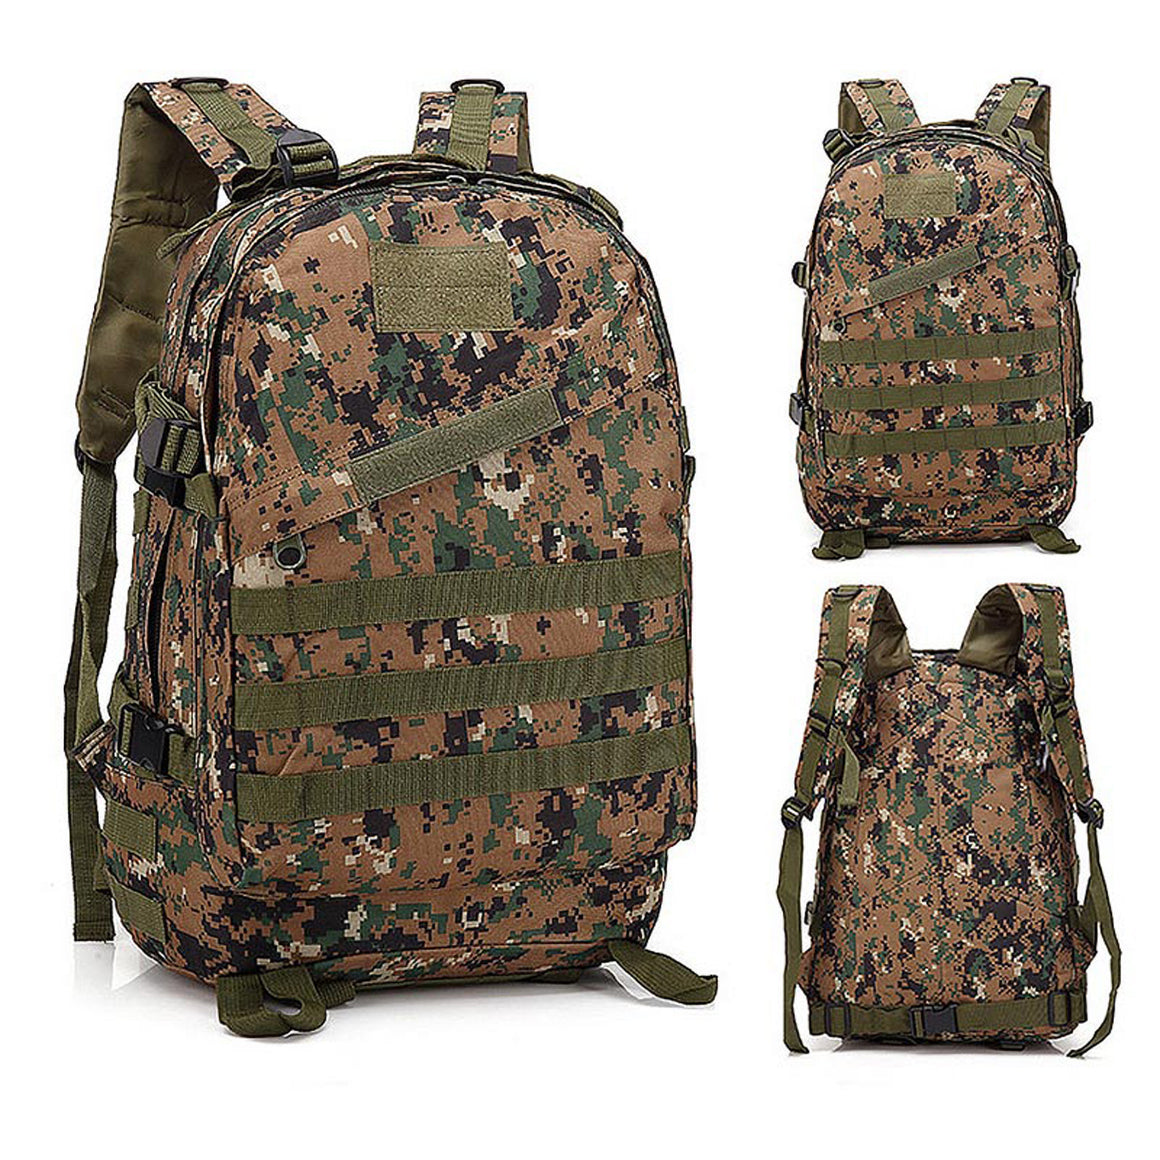 40L Rucksack Tactical Backpack Military Backpack Tactical Bag Army Travel Outdoor Sports Bag Waterproof Hiking Hunting Camping